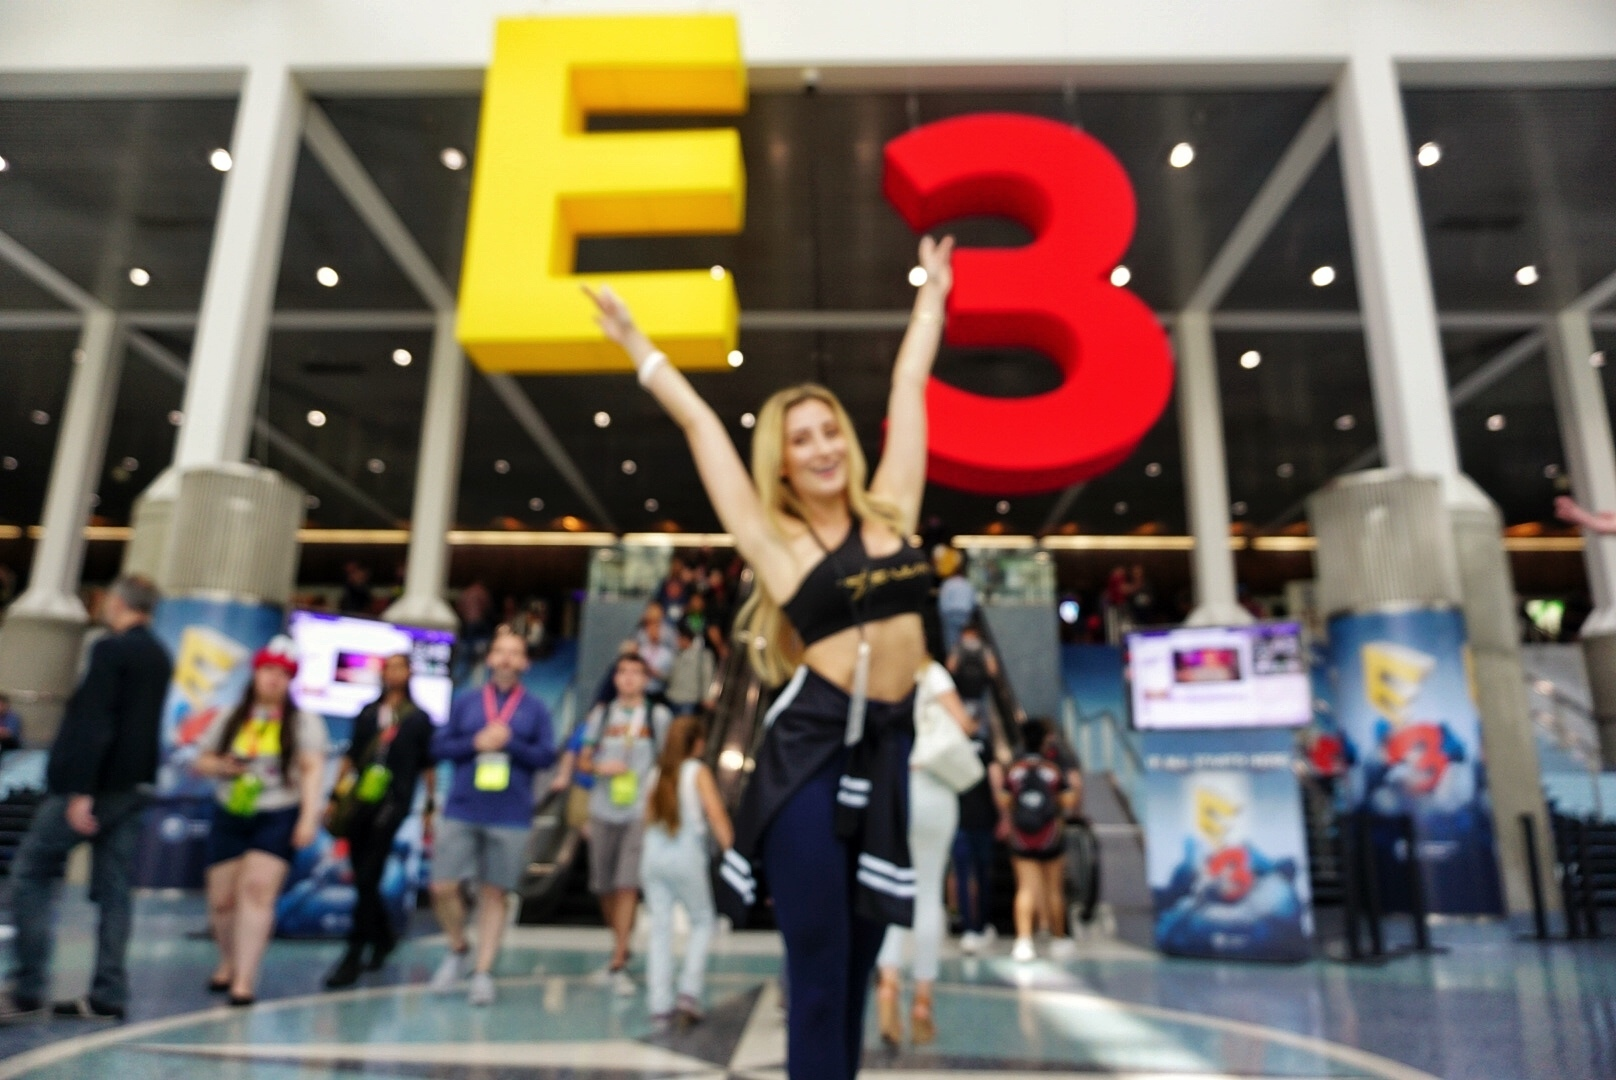 E3 2017! Getting lit as a gamer girl :)